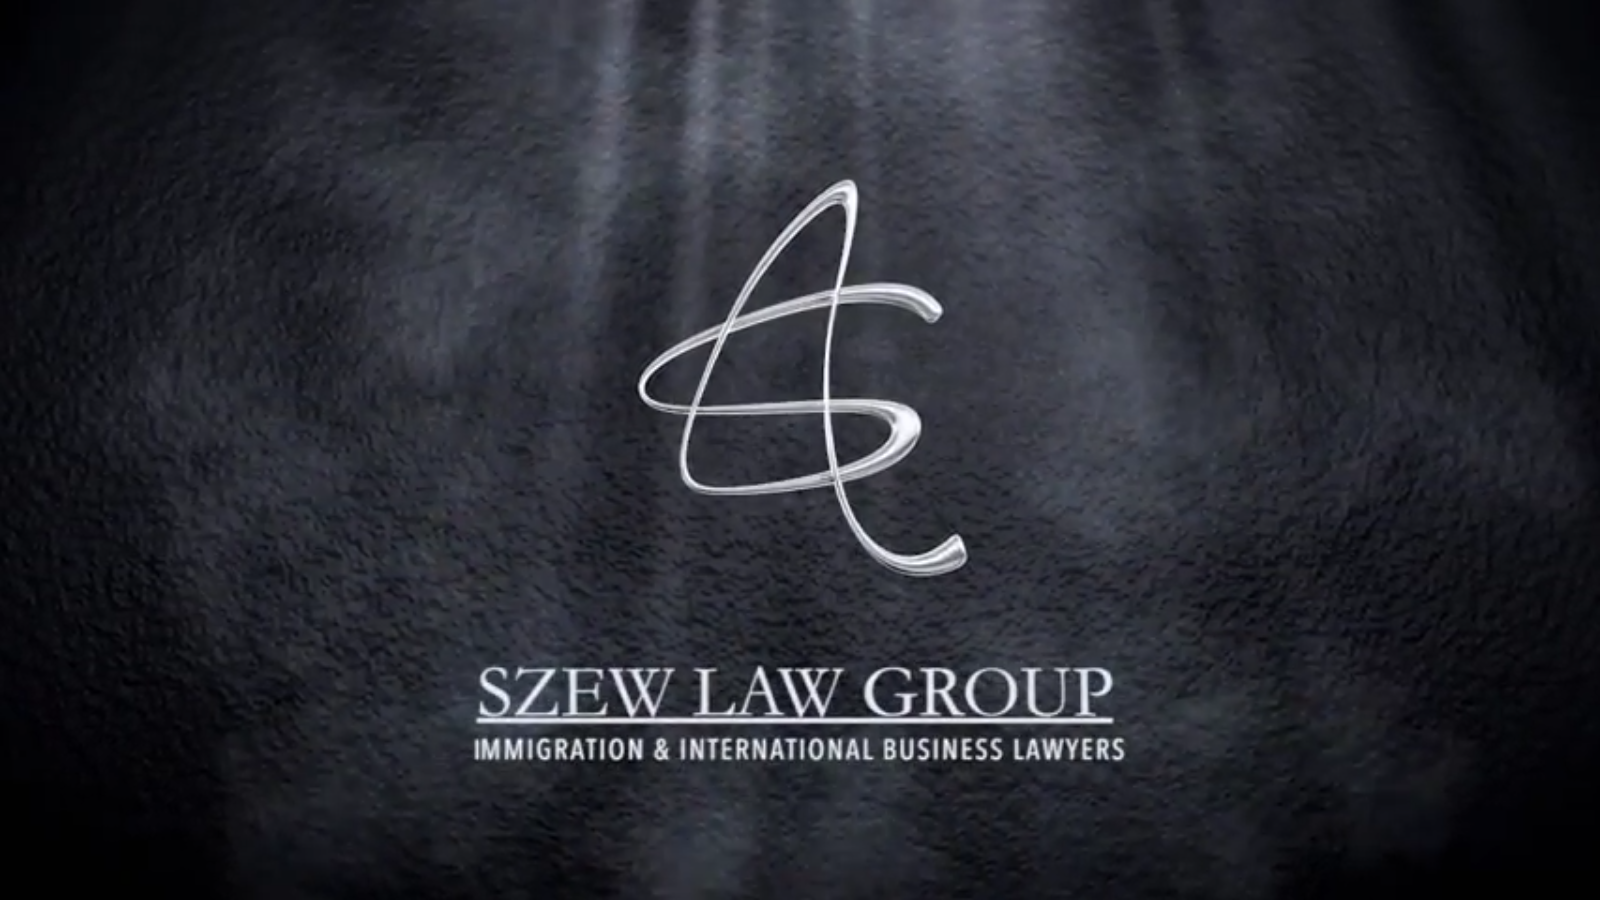 Szew Law Group - International business and immigration